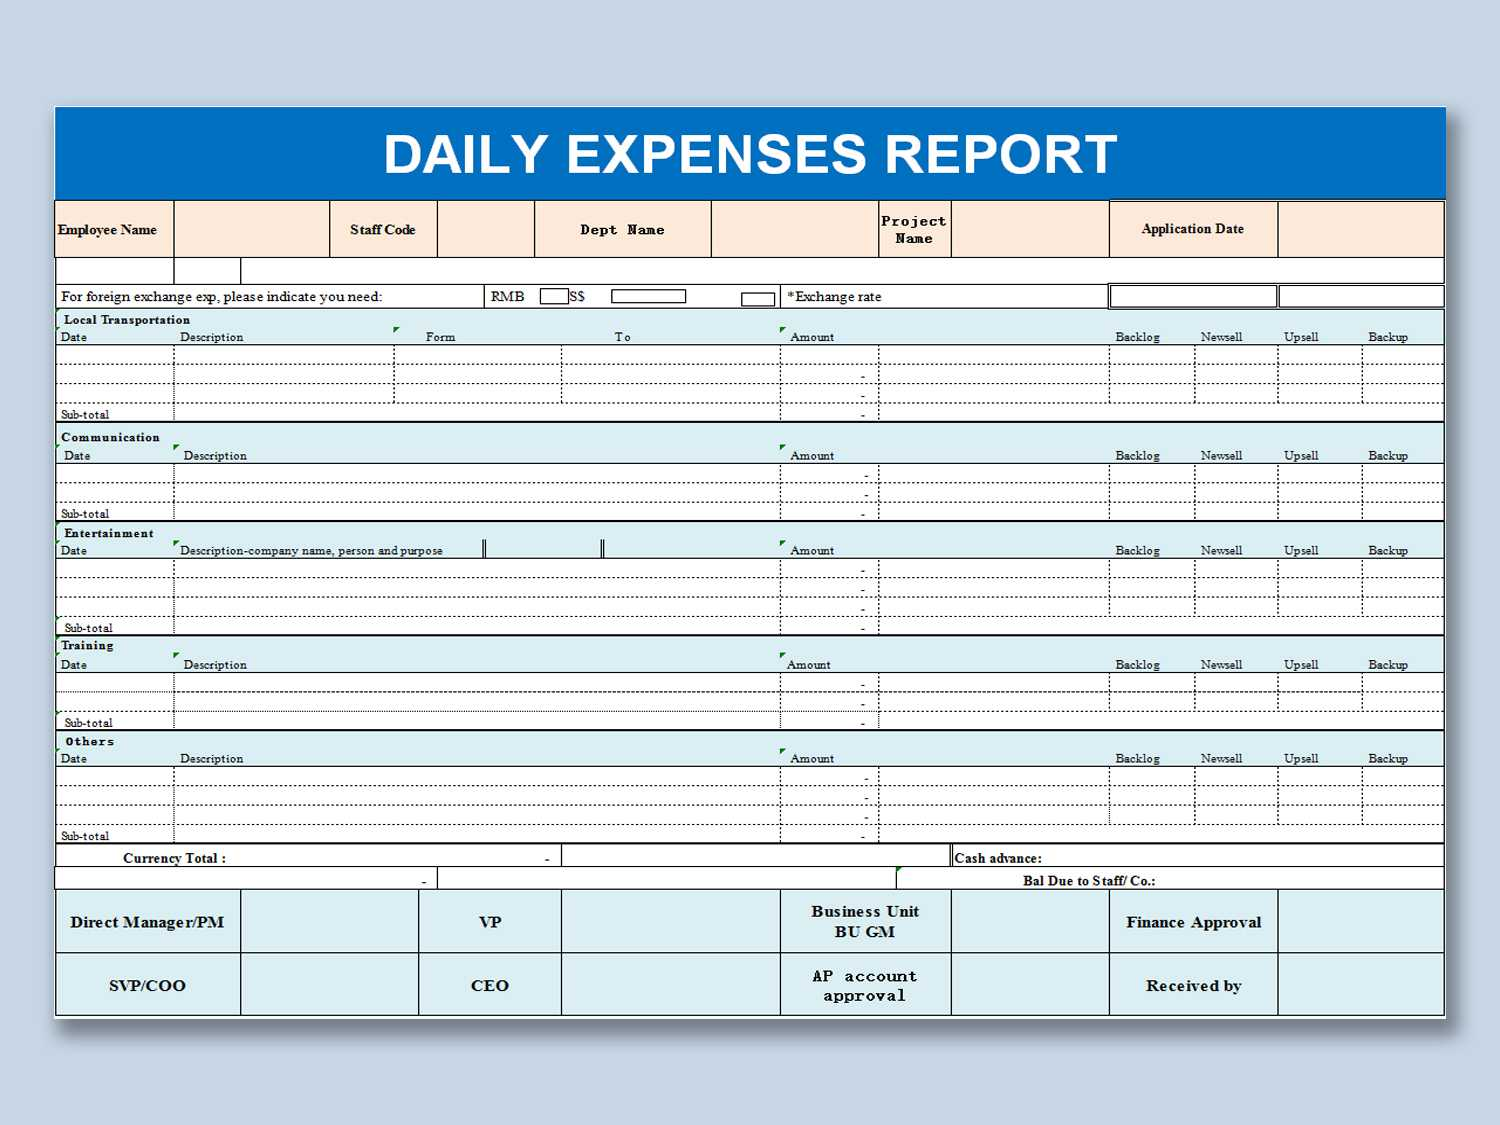 Wps Template - Free Download Writer, Presentation pertaining to Daily Expense Report Template